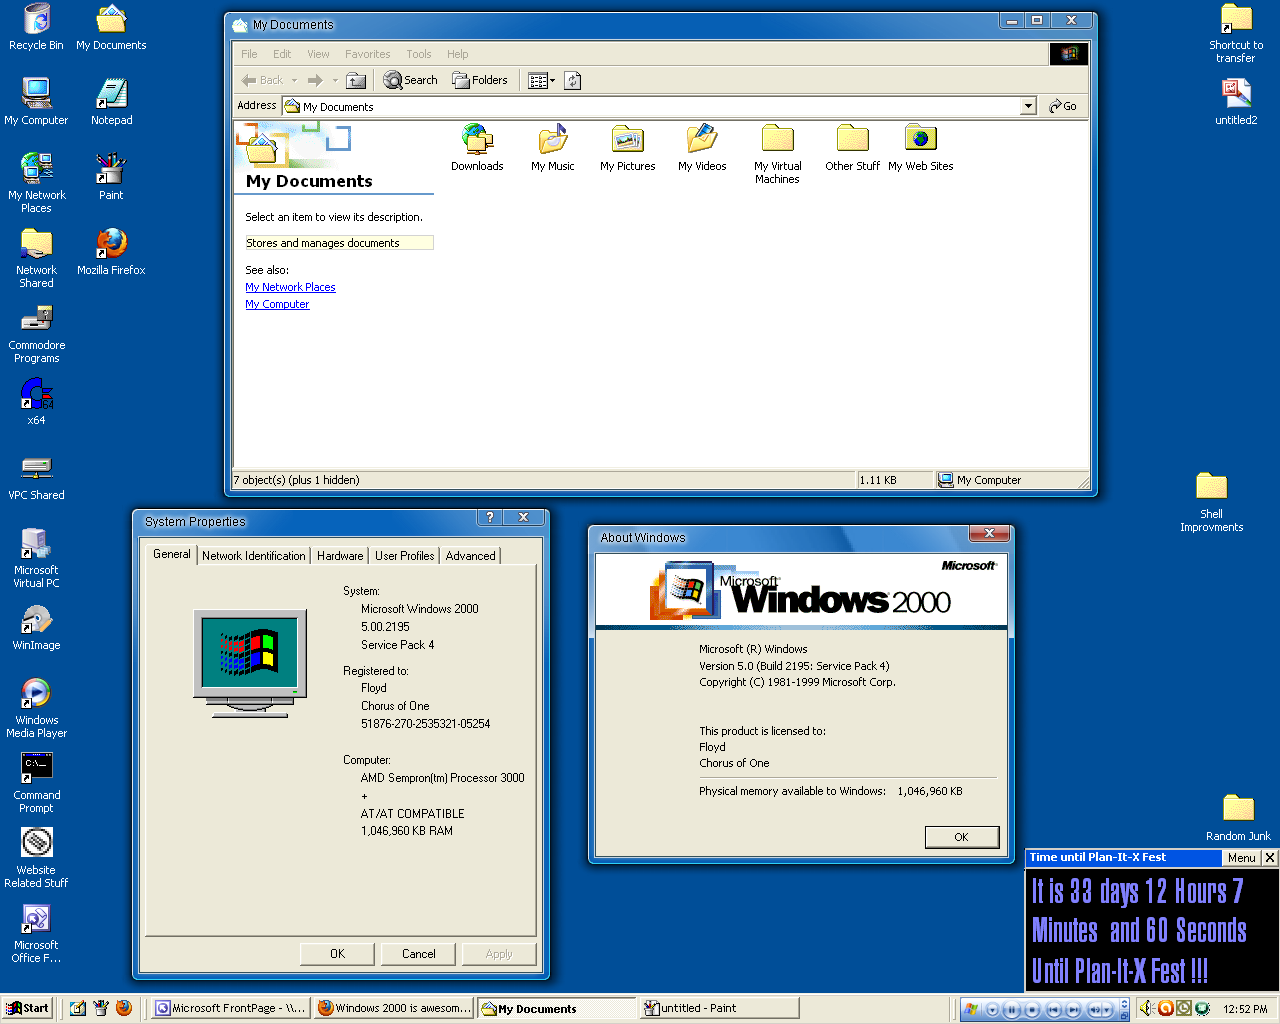 Windows 2000 setting